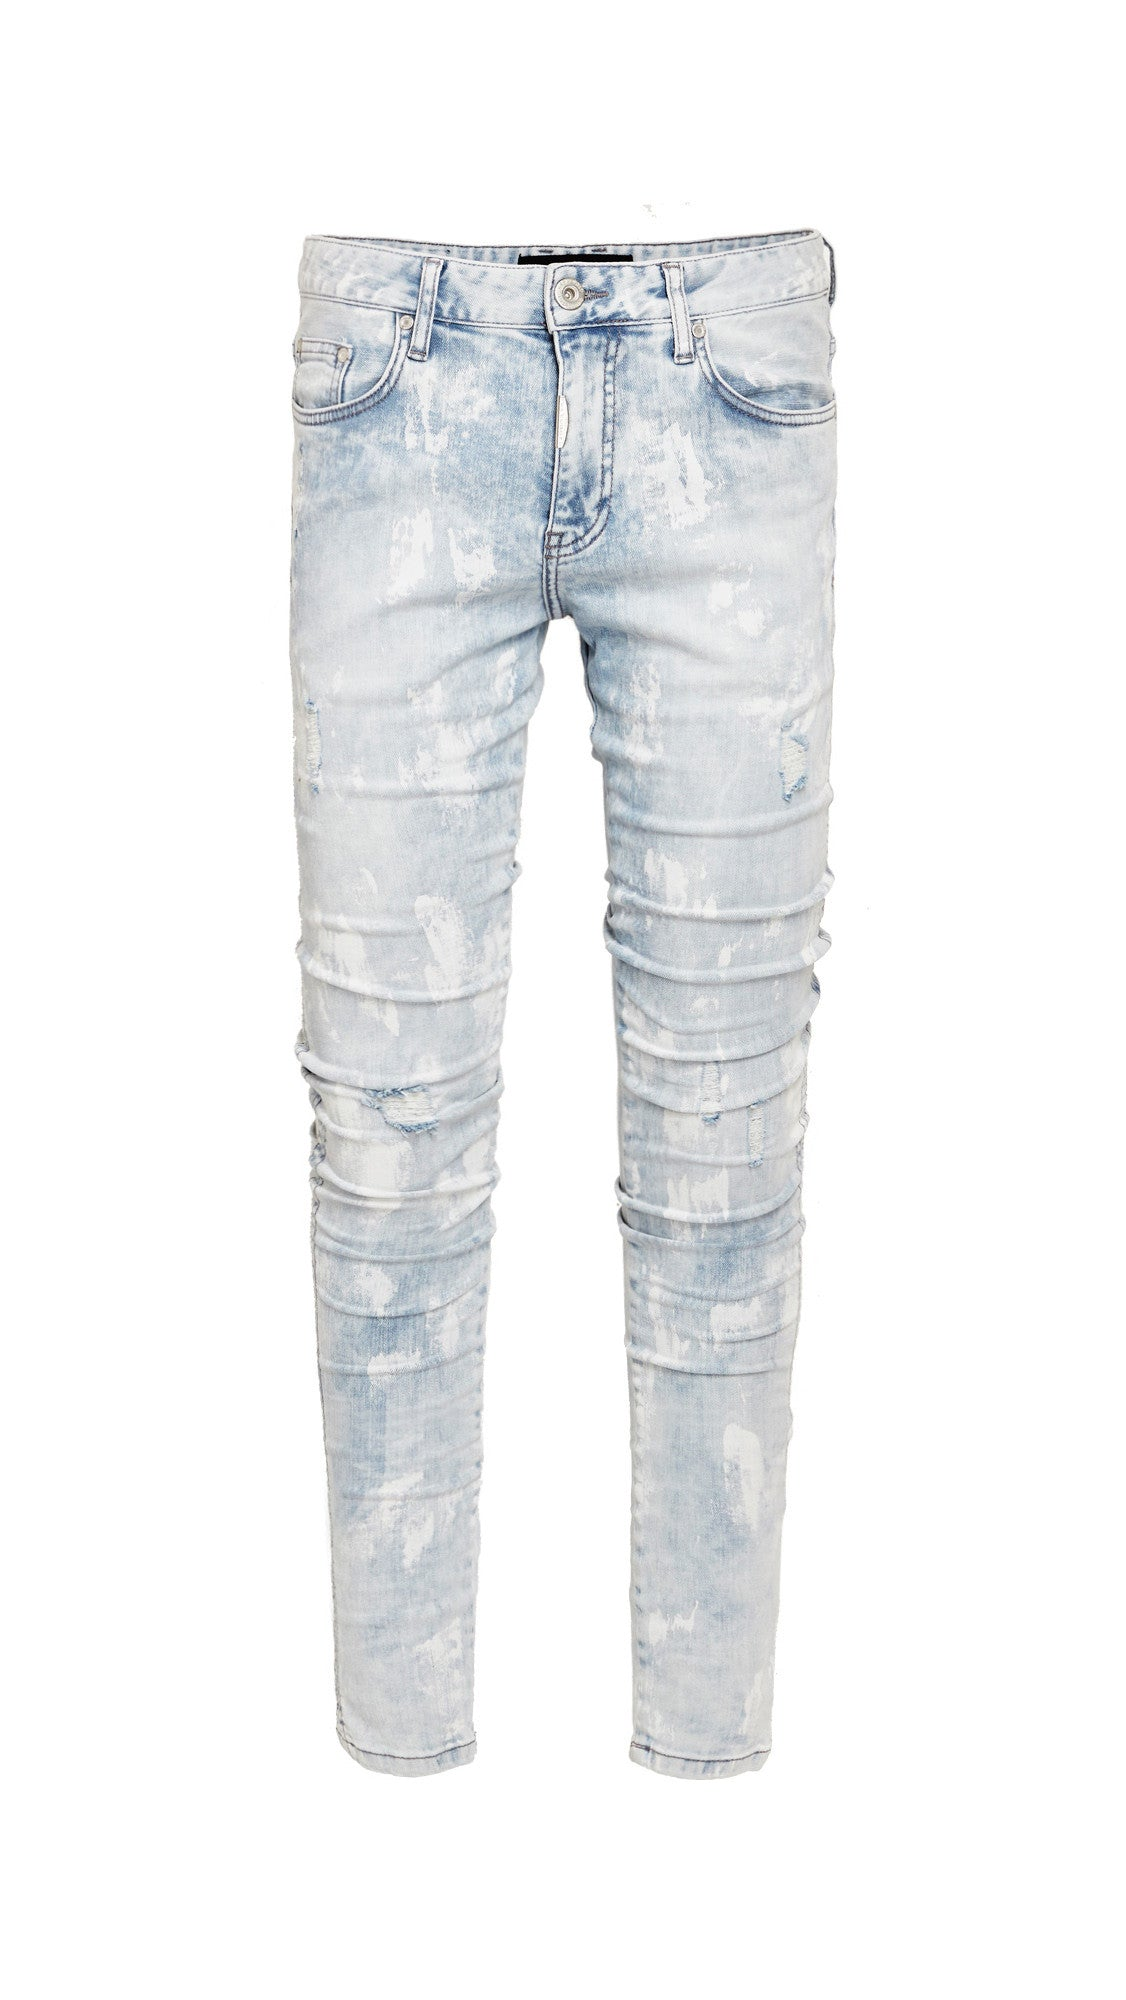 Essential Denim - Bleach Blue